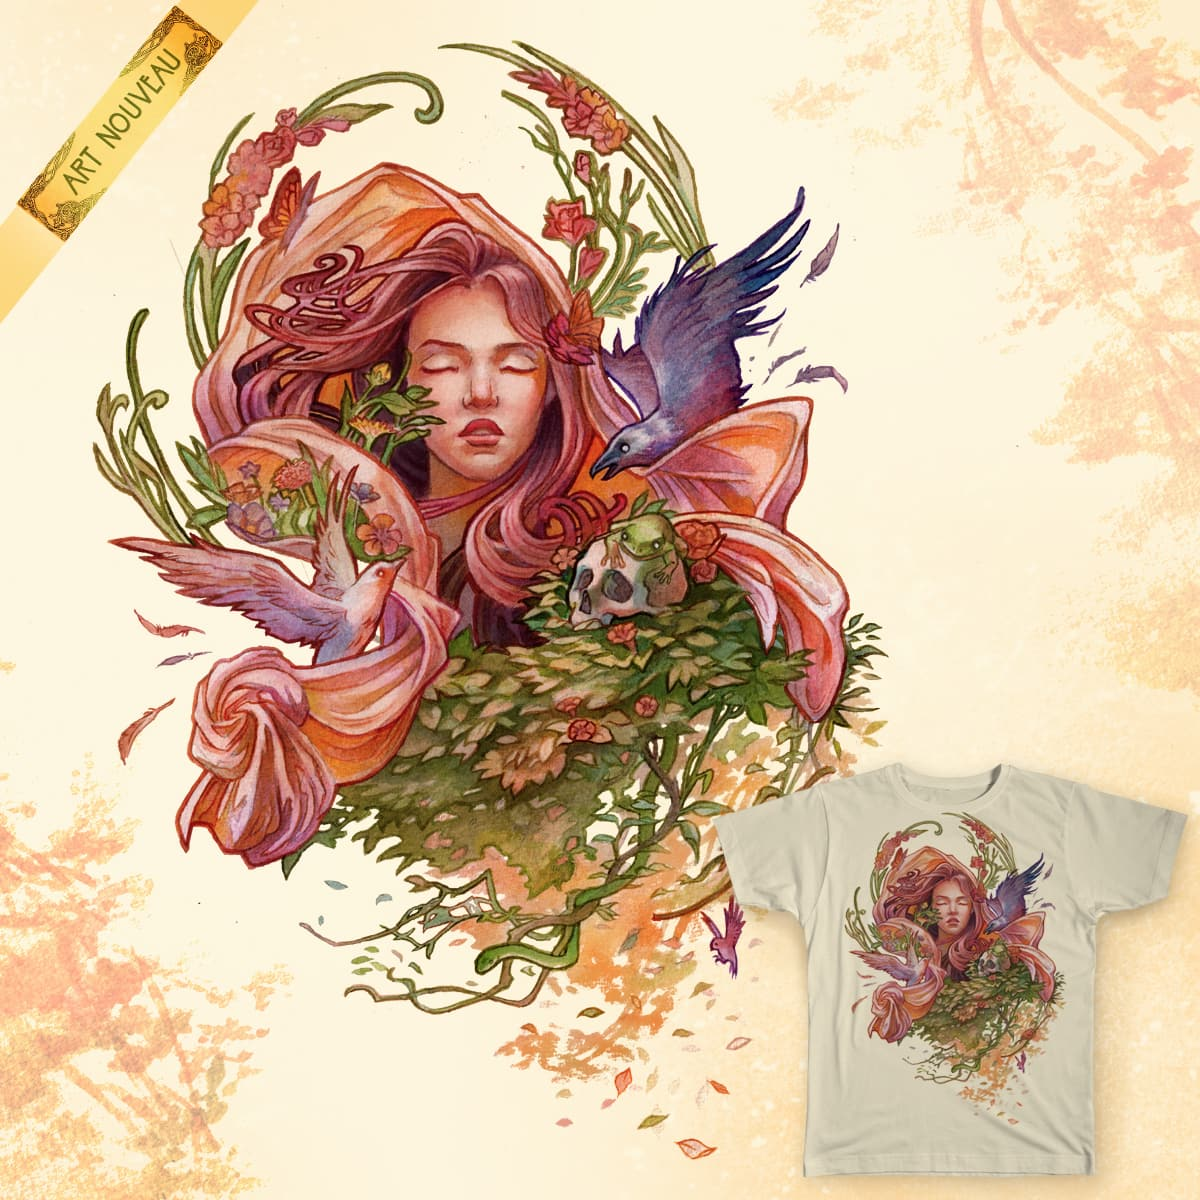 Dual Thoughts by Seyer21 on Threadless